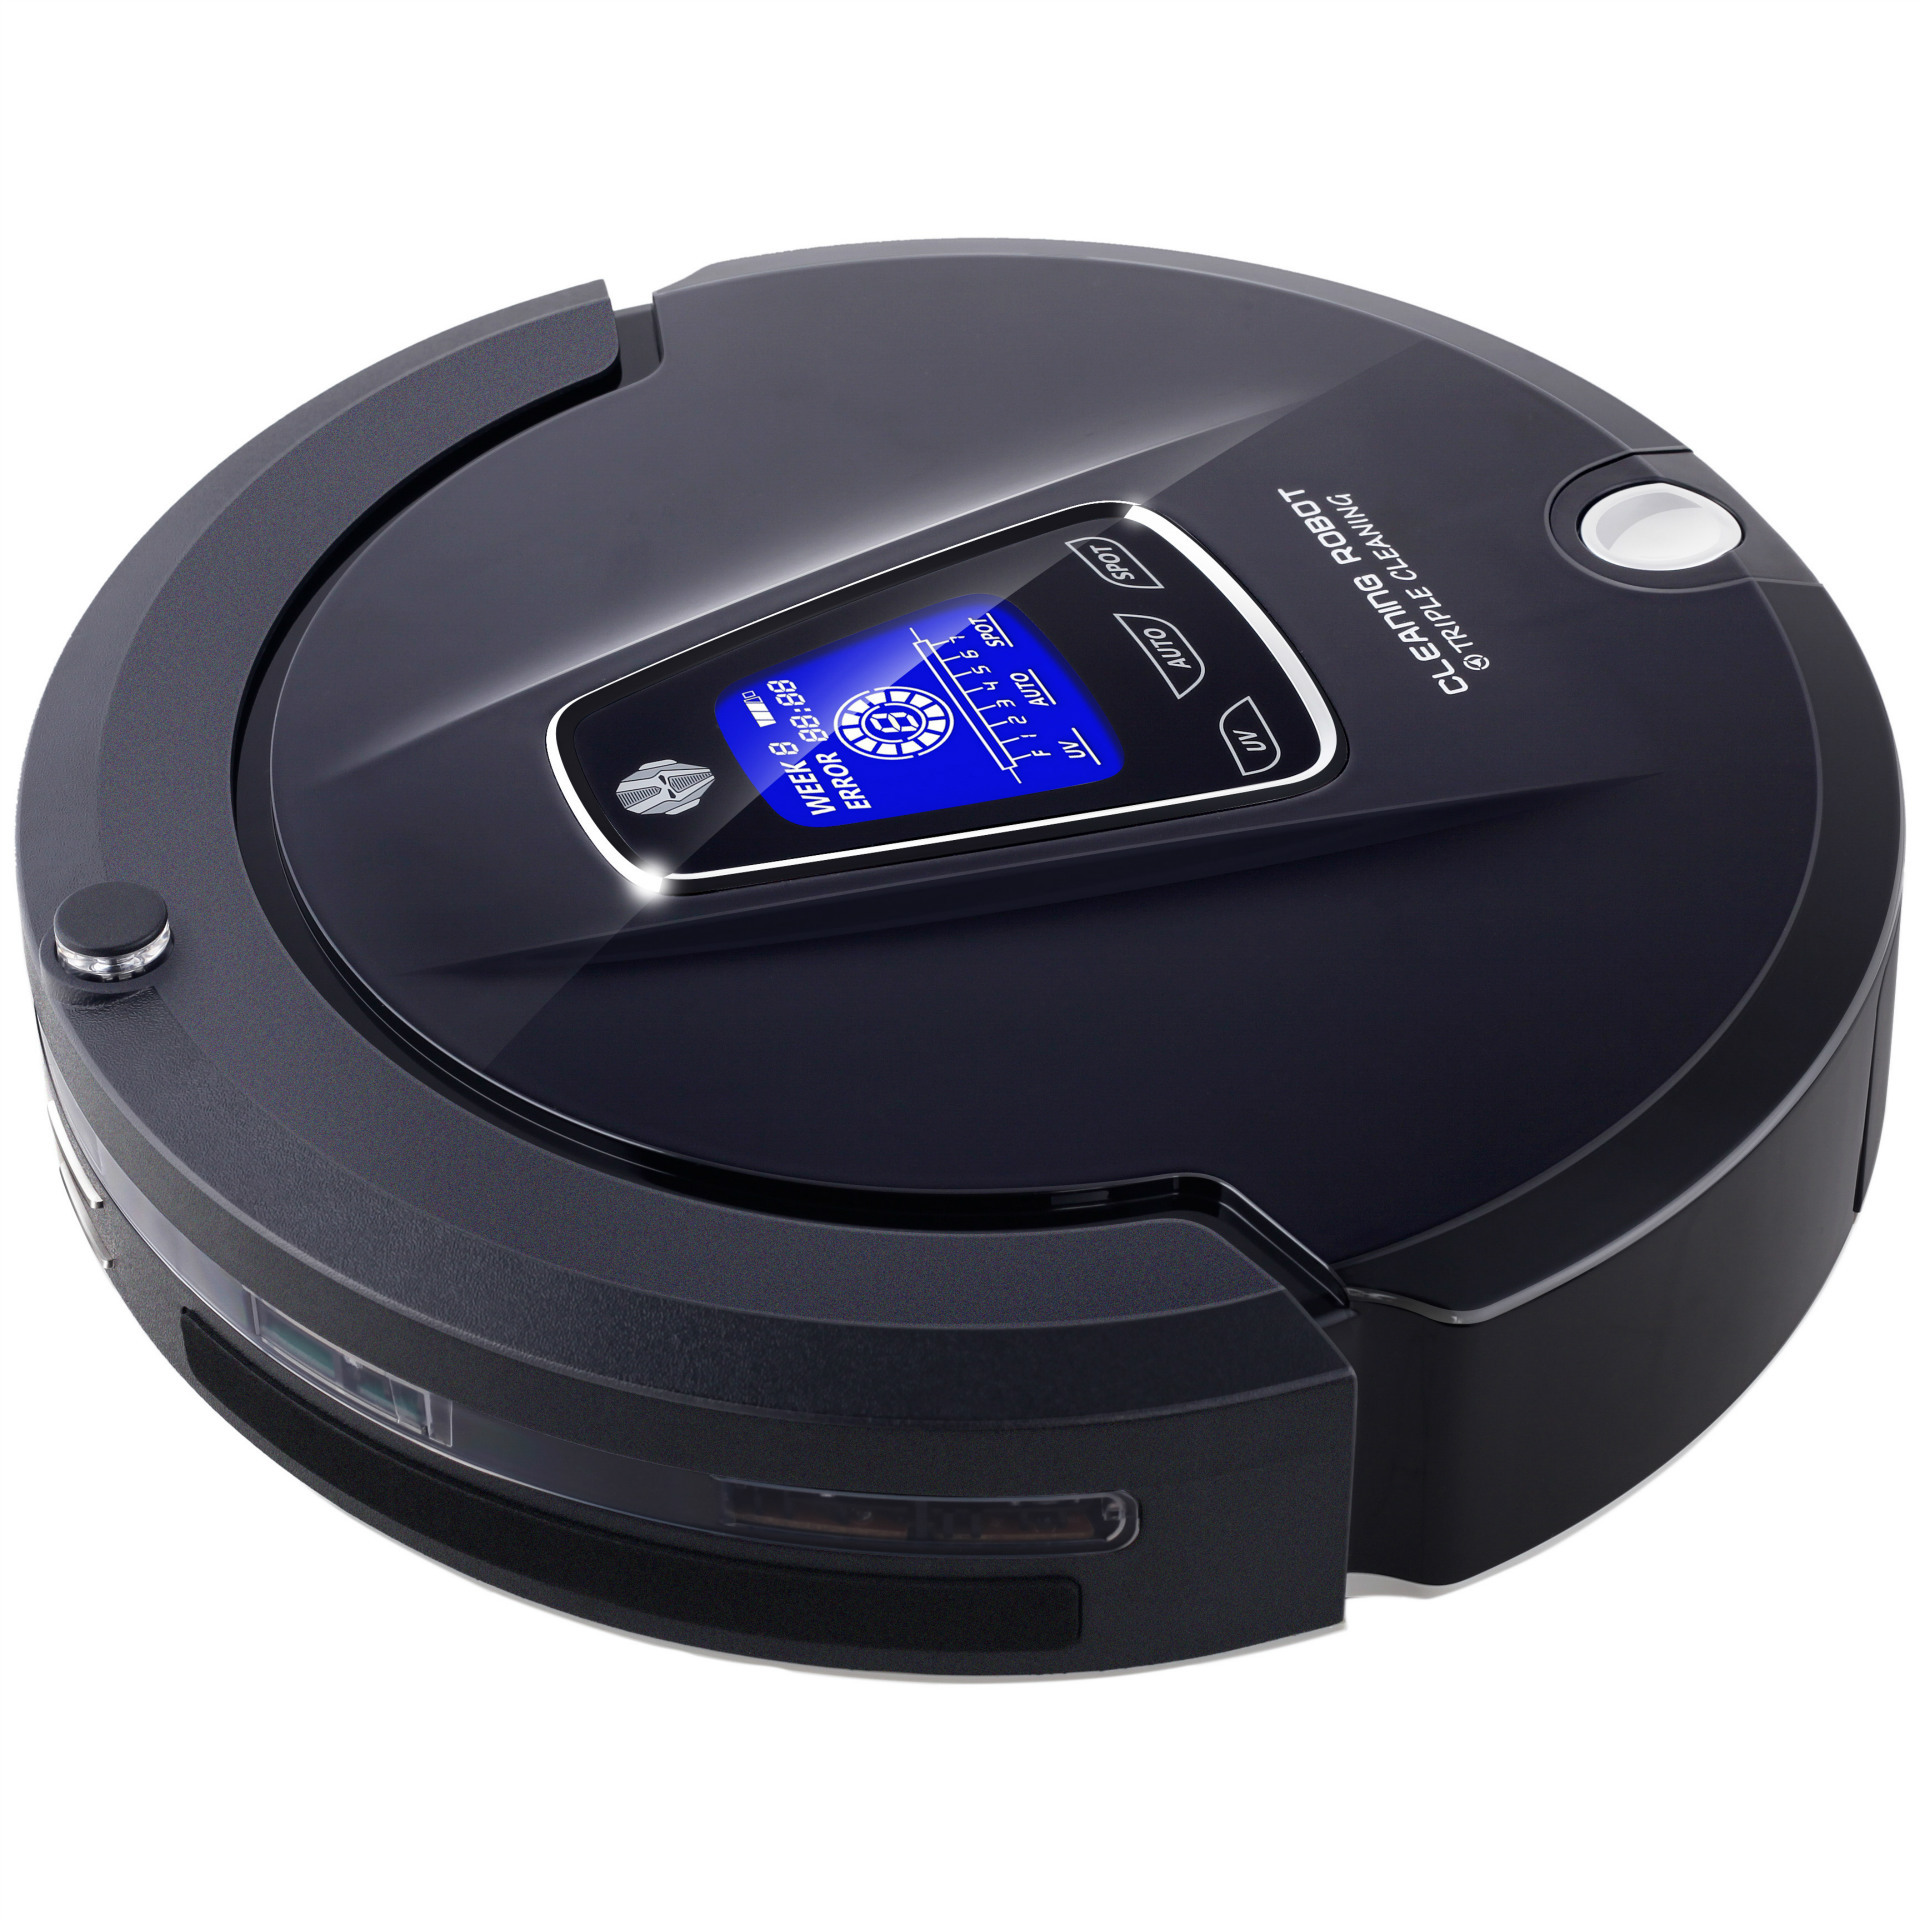 Electric Floor Mops Cleaning Appliances Orderly Mini Mute Intelligent Vacuum Cleaner Robot Automatic Induction Sweeper Robot Vacuum Cleaner For Home Cleaning Battery Type